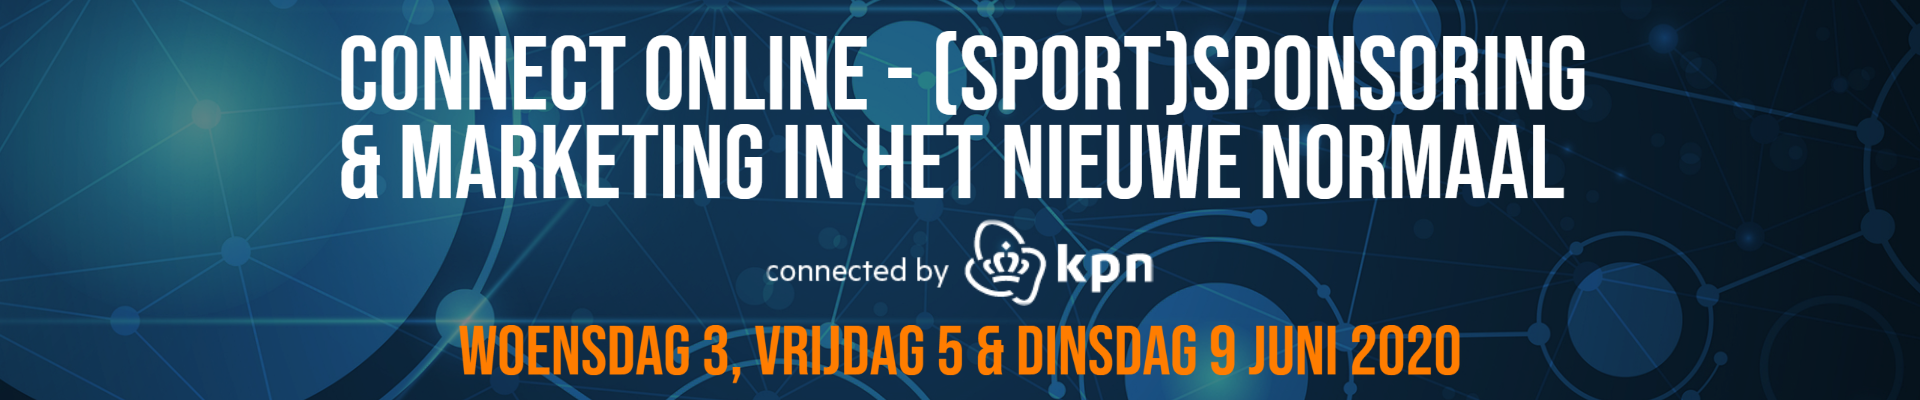 Connect online – (sport)sponsoring & marketing in het nieuwe normaal